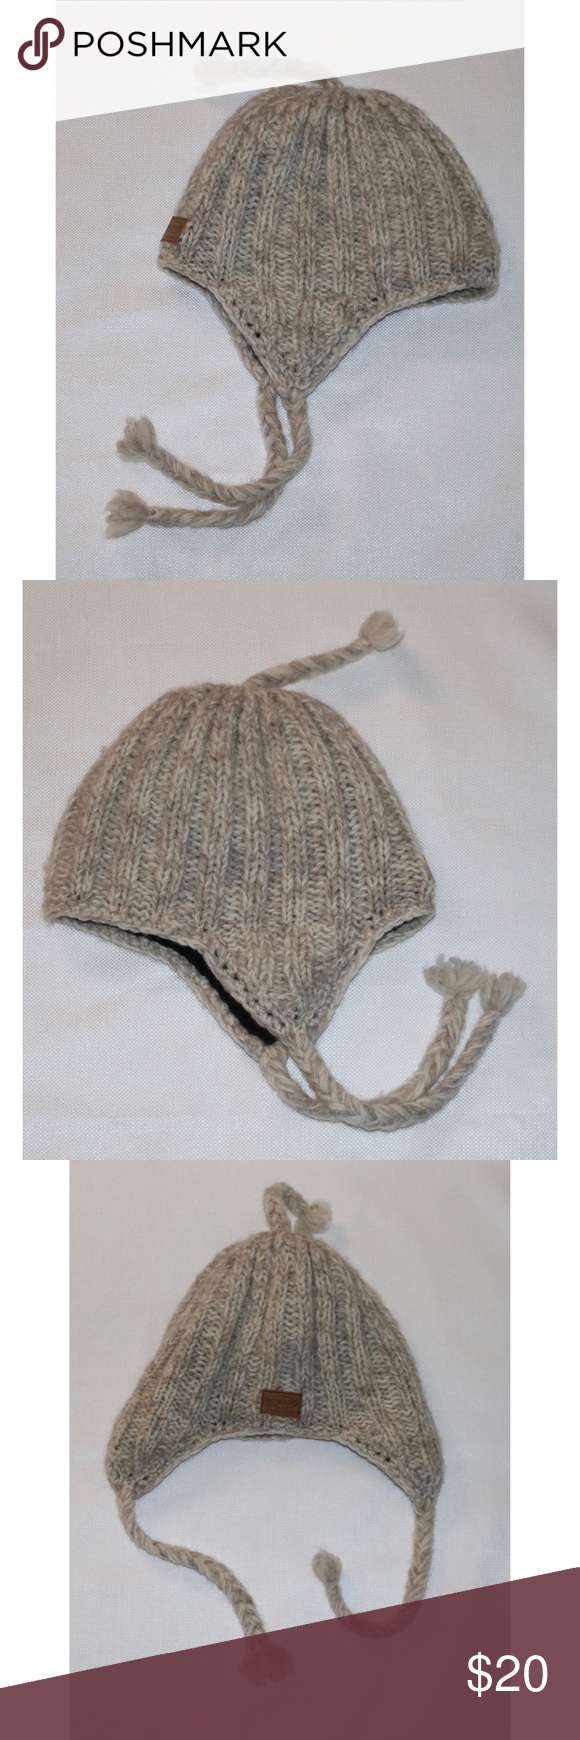 5250338efad Cyber Outerwear Beige 100% Wool Lined Beanie Hat Kyber Outerwear Beige 100% Wool  Fleece Lined Beanie Toque Hat In Very Good Pre Owned Condition